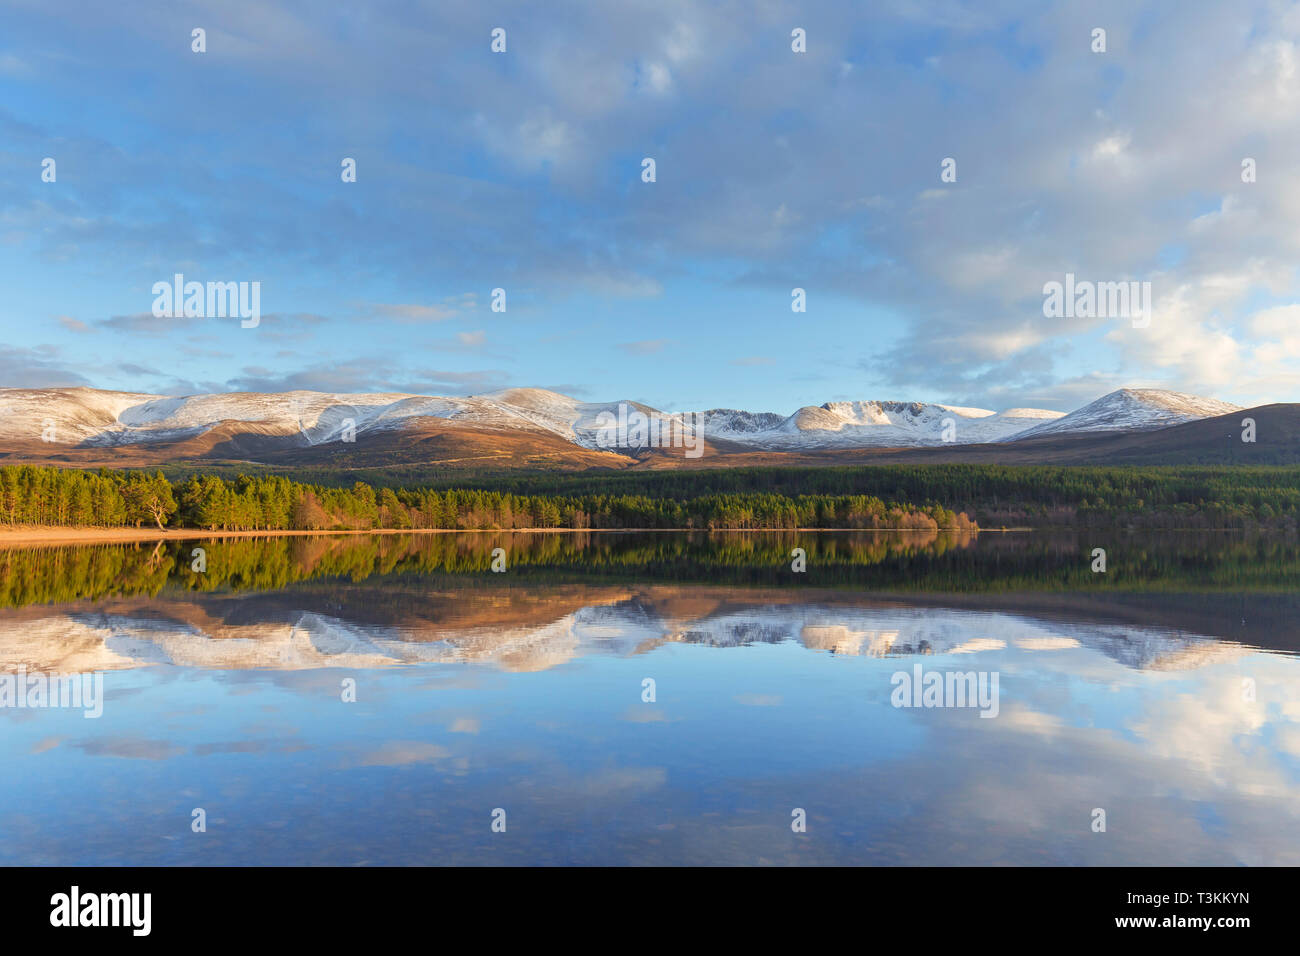 Loch Morlich and Cairngorm Mountains, Cairngorms National Park near Aviemore, Badenoch and Strathspey, Scotland, UK Stock Photo